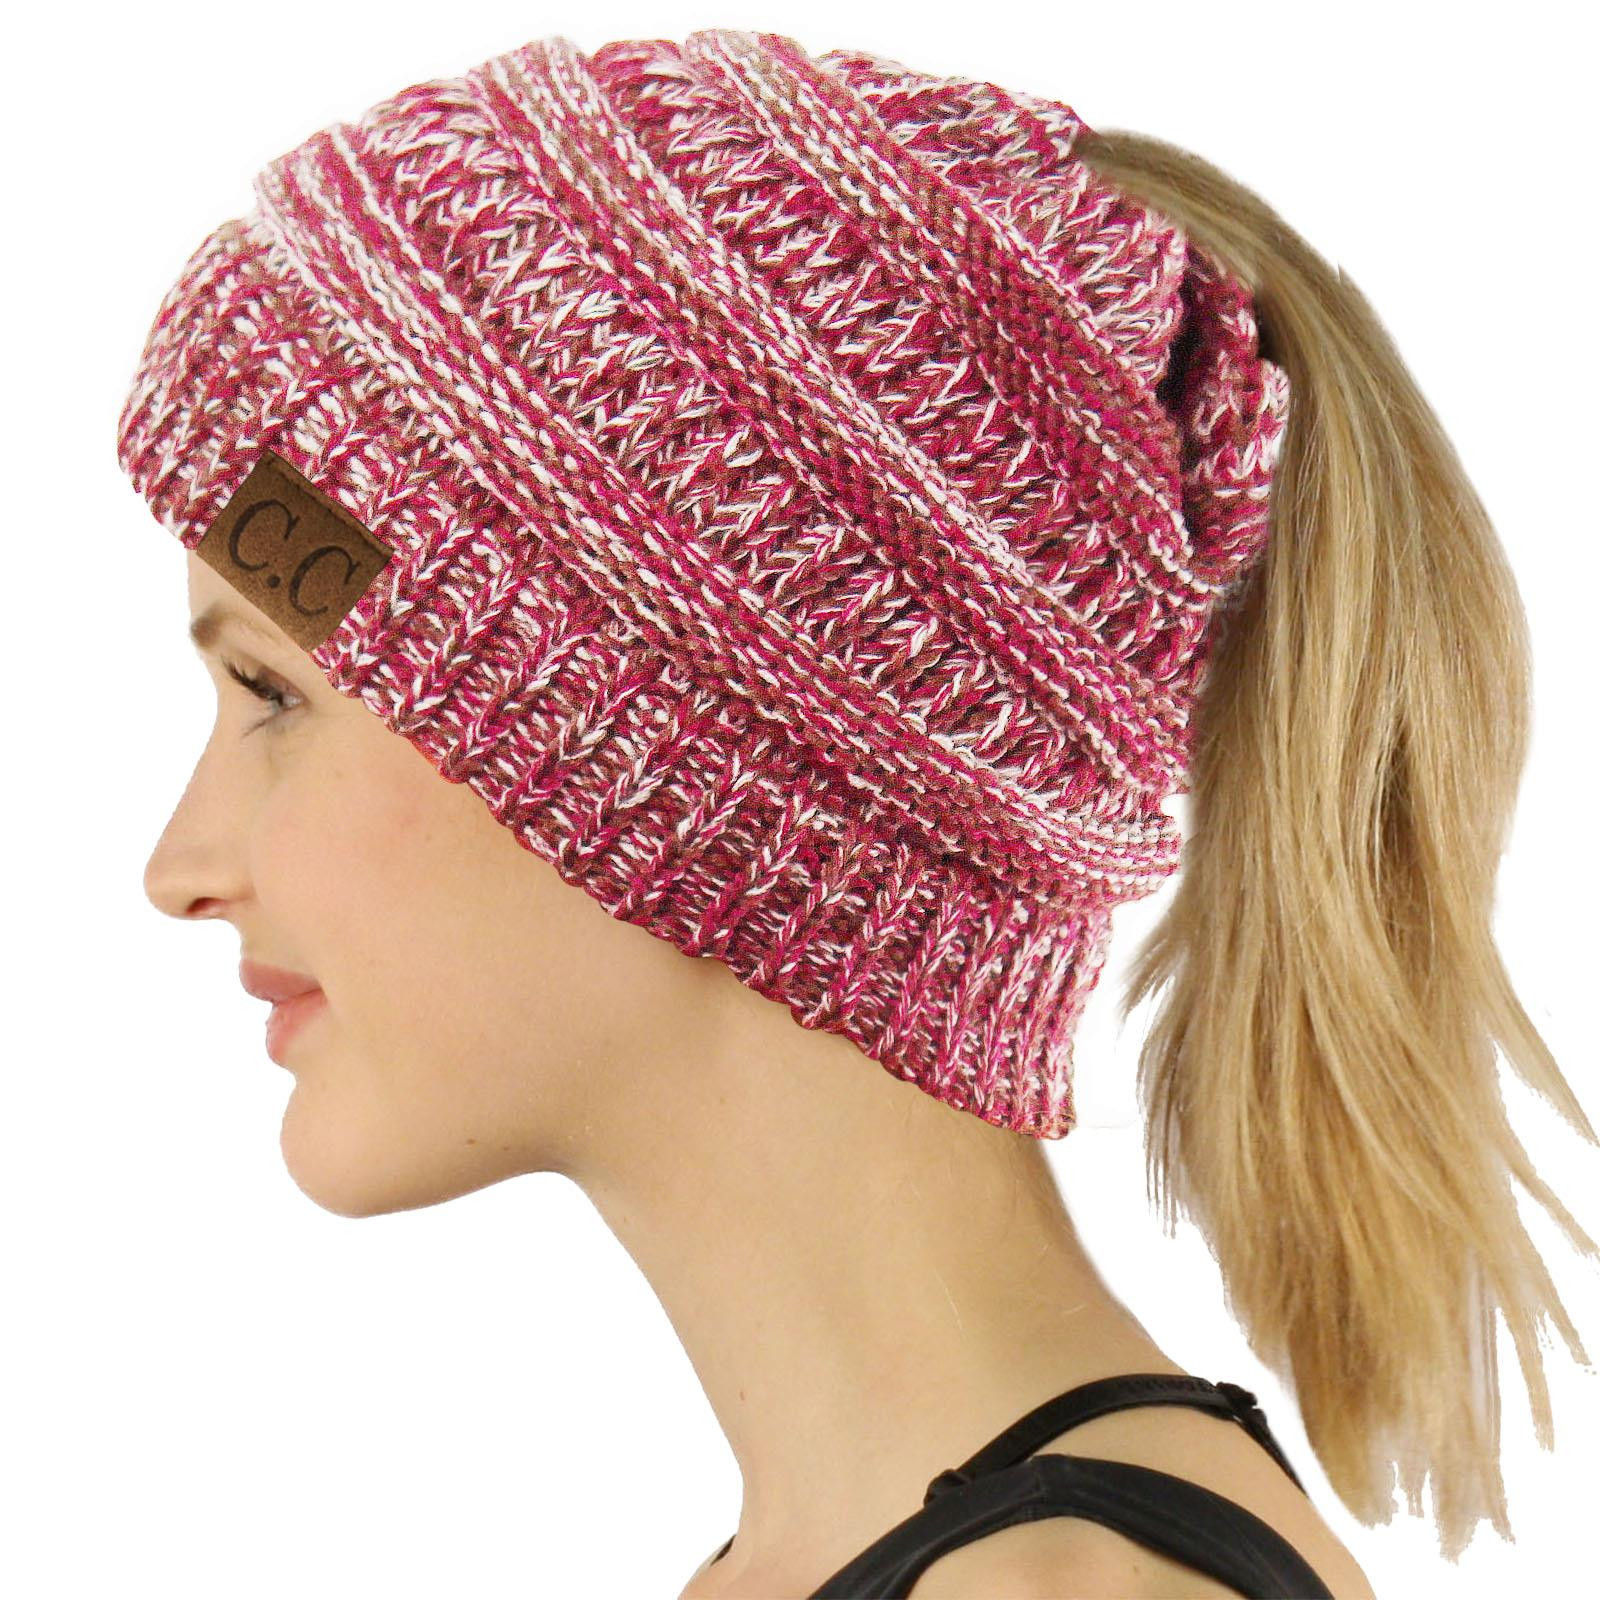 Messy Bun Beanie Hat New Cc Beanietail Messy High Bun Ponytail Stretchy Knit Beanie Of Brilliant 47 Photos Messy Bun Beanie Hat